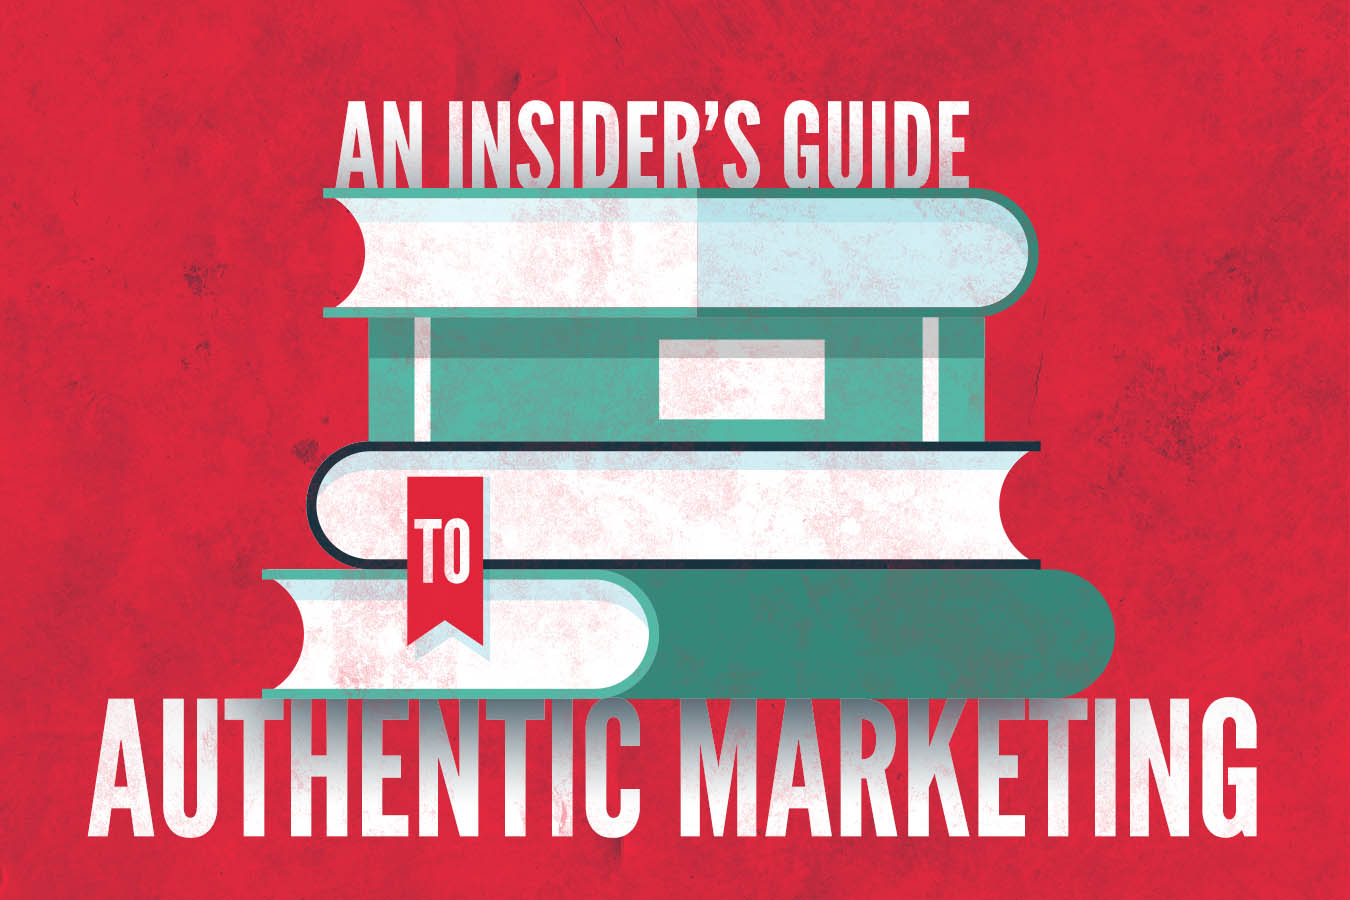 An Insider's Guide to Authentic Marketing